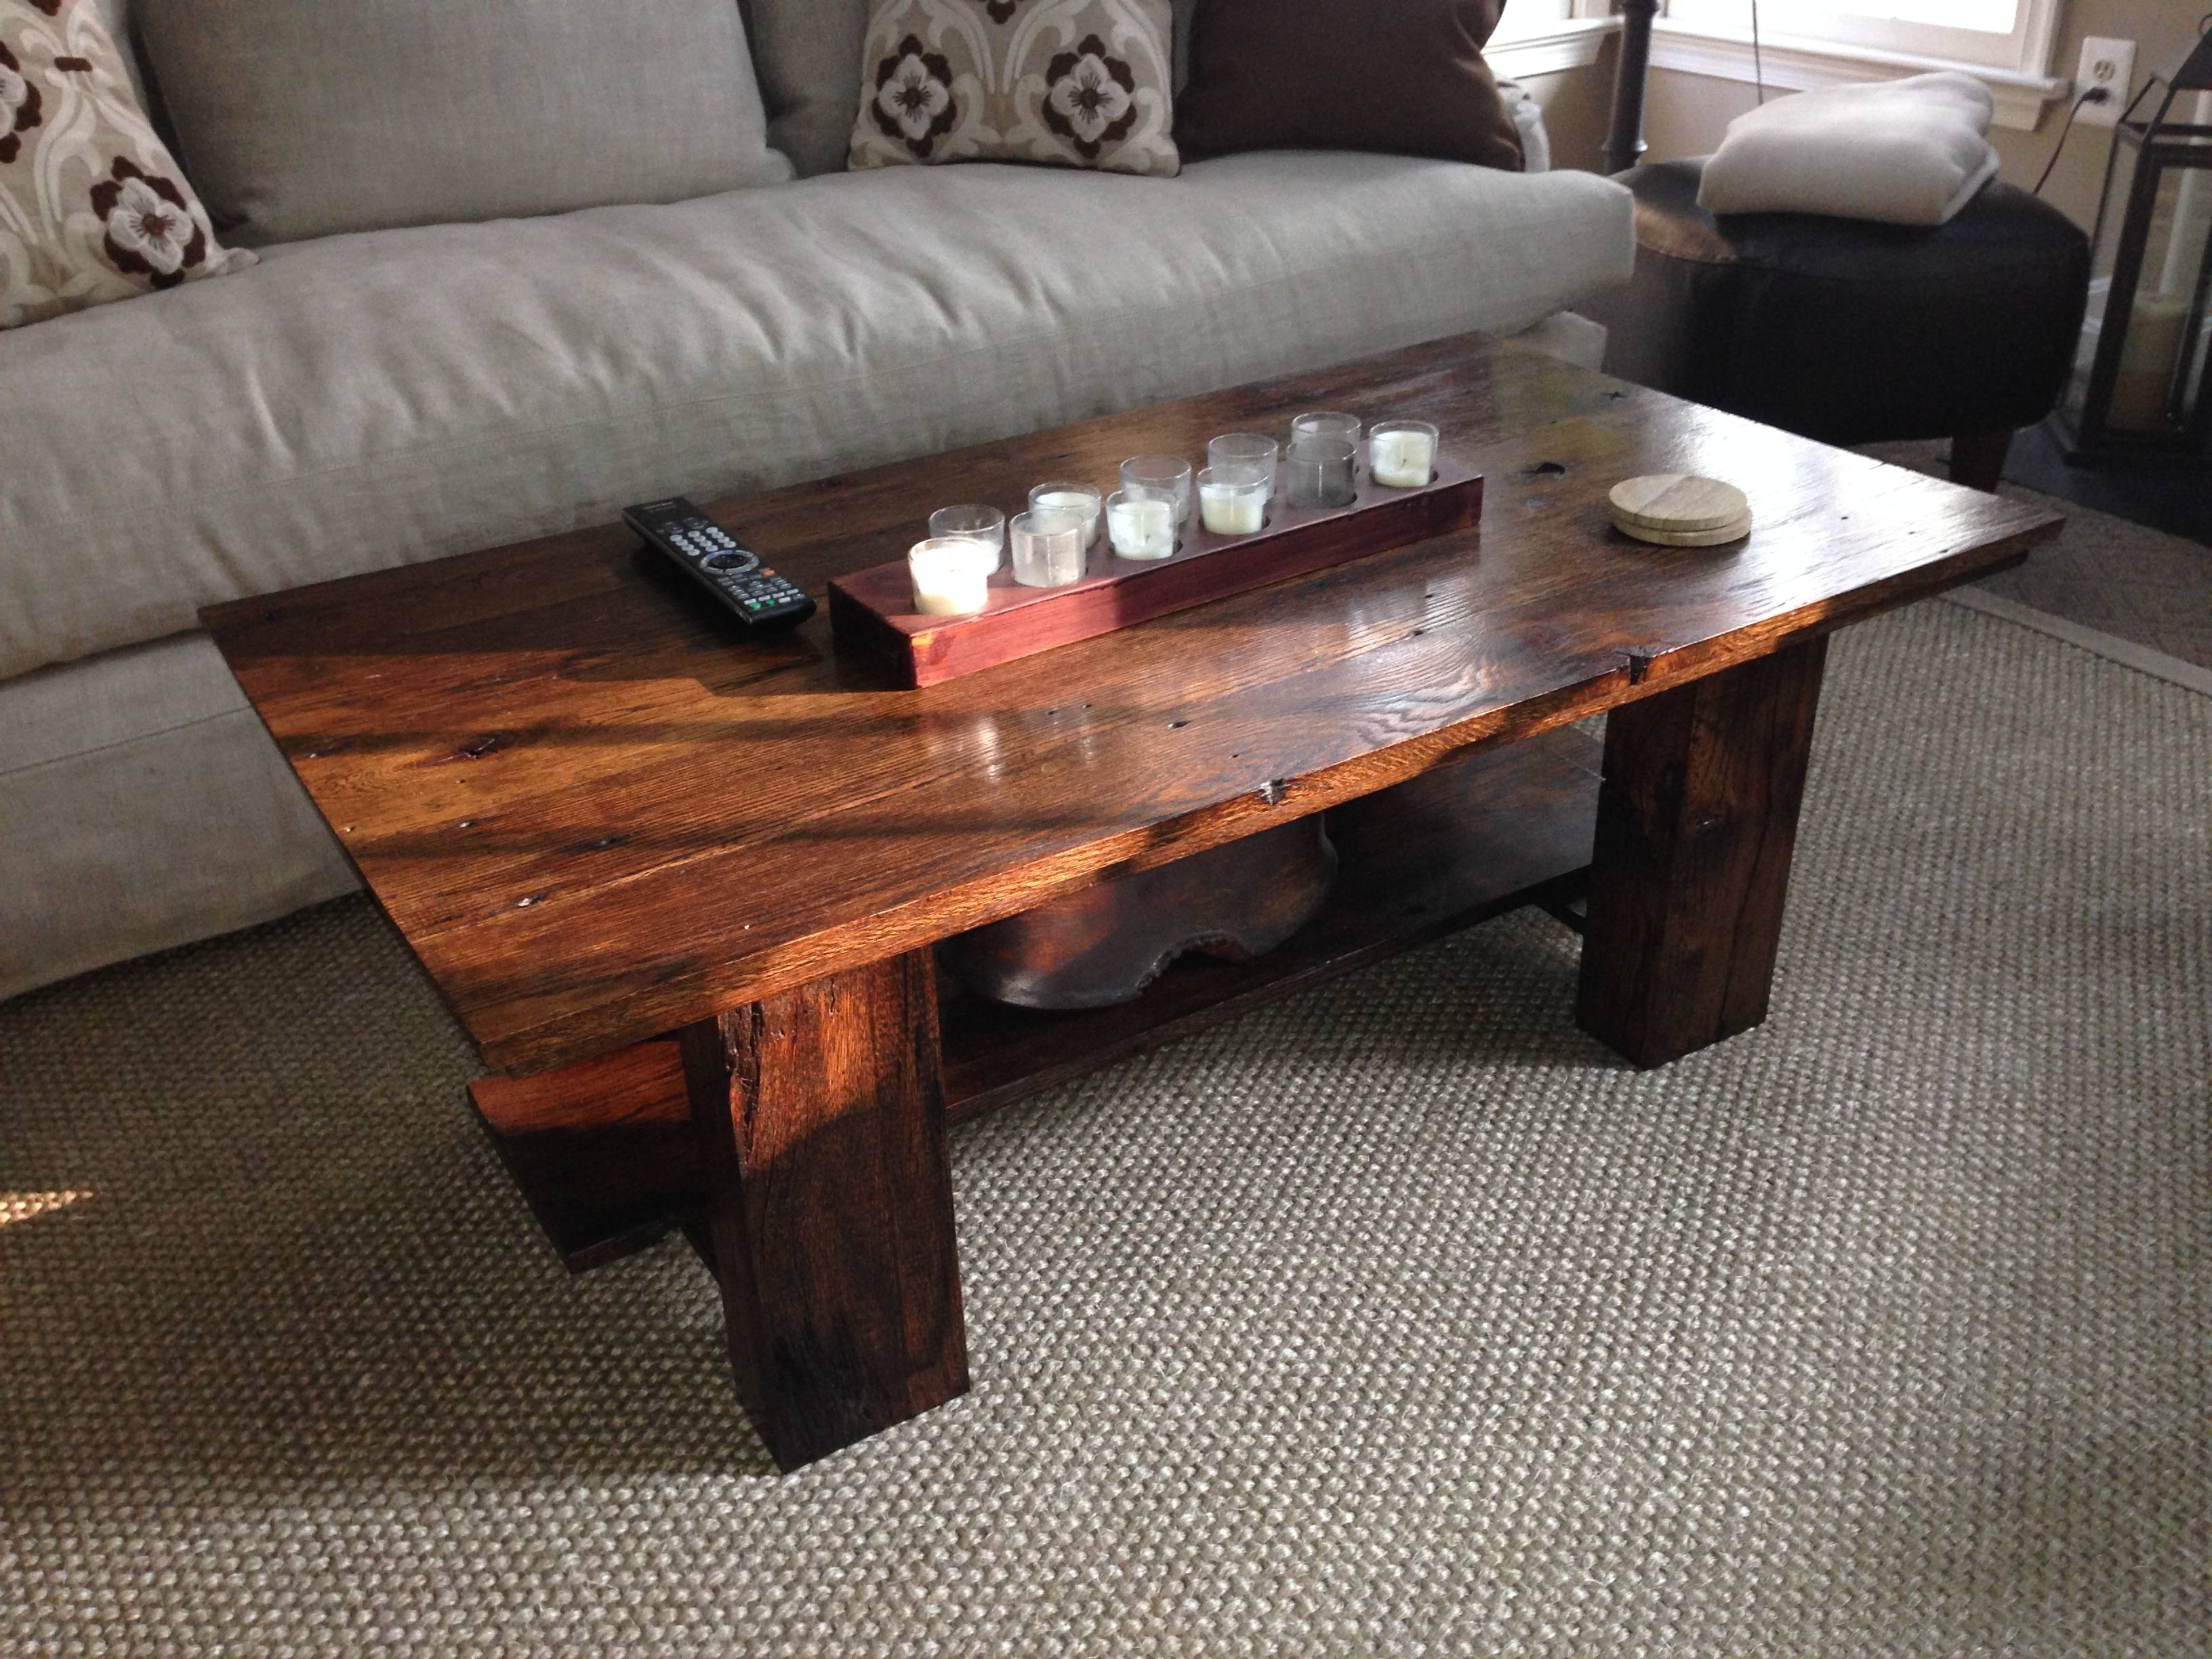 St Helena Coffee Table | The Sawdust Files With Jacobean Coffee Tables (Image 14 of 15)